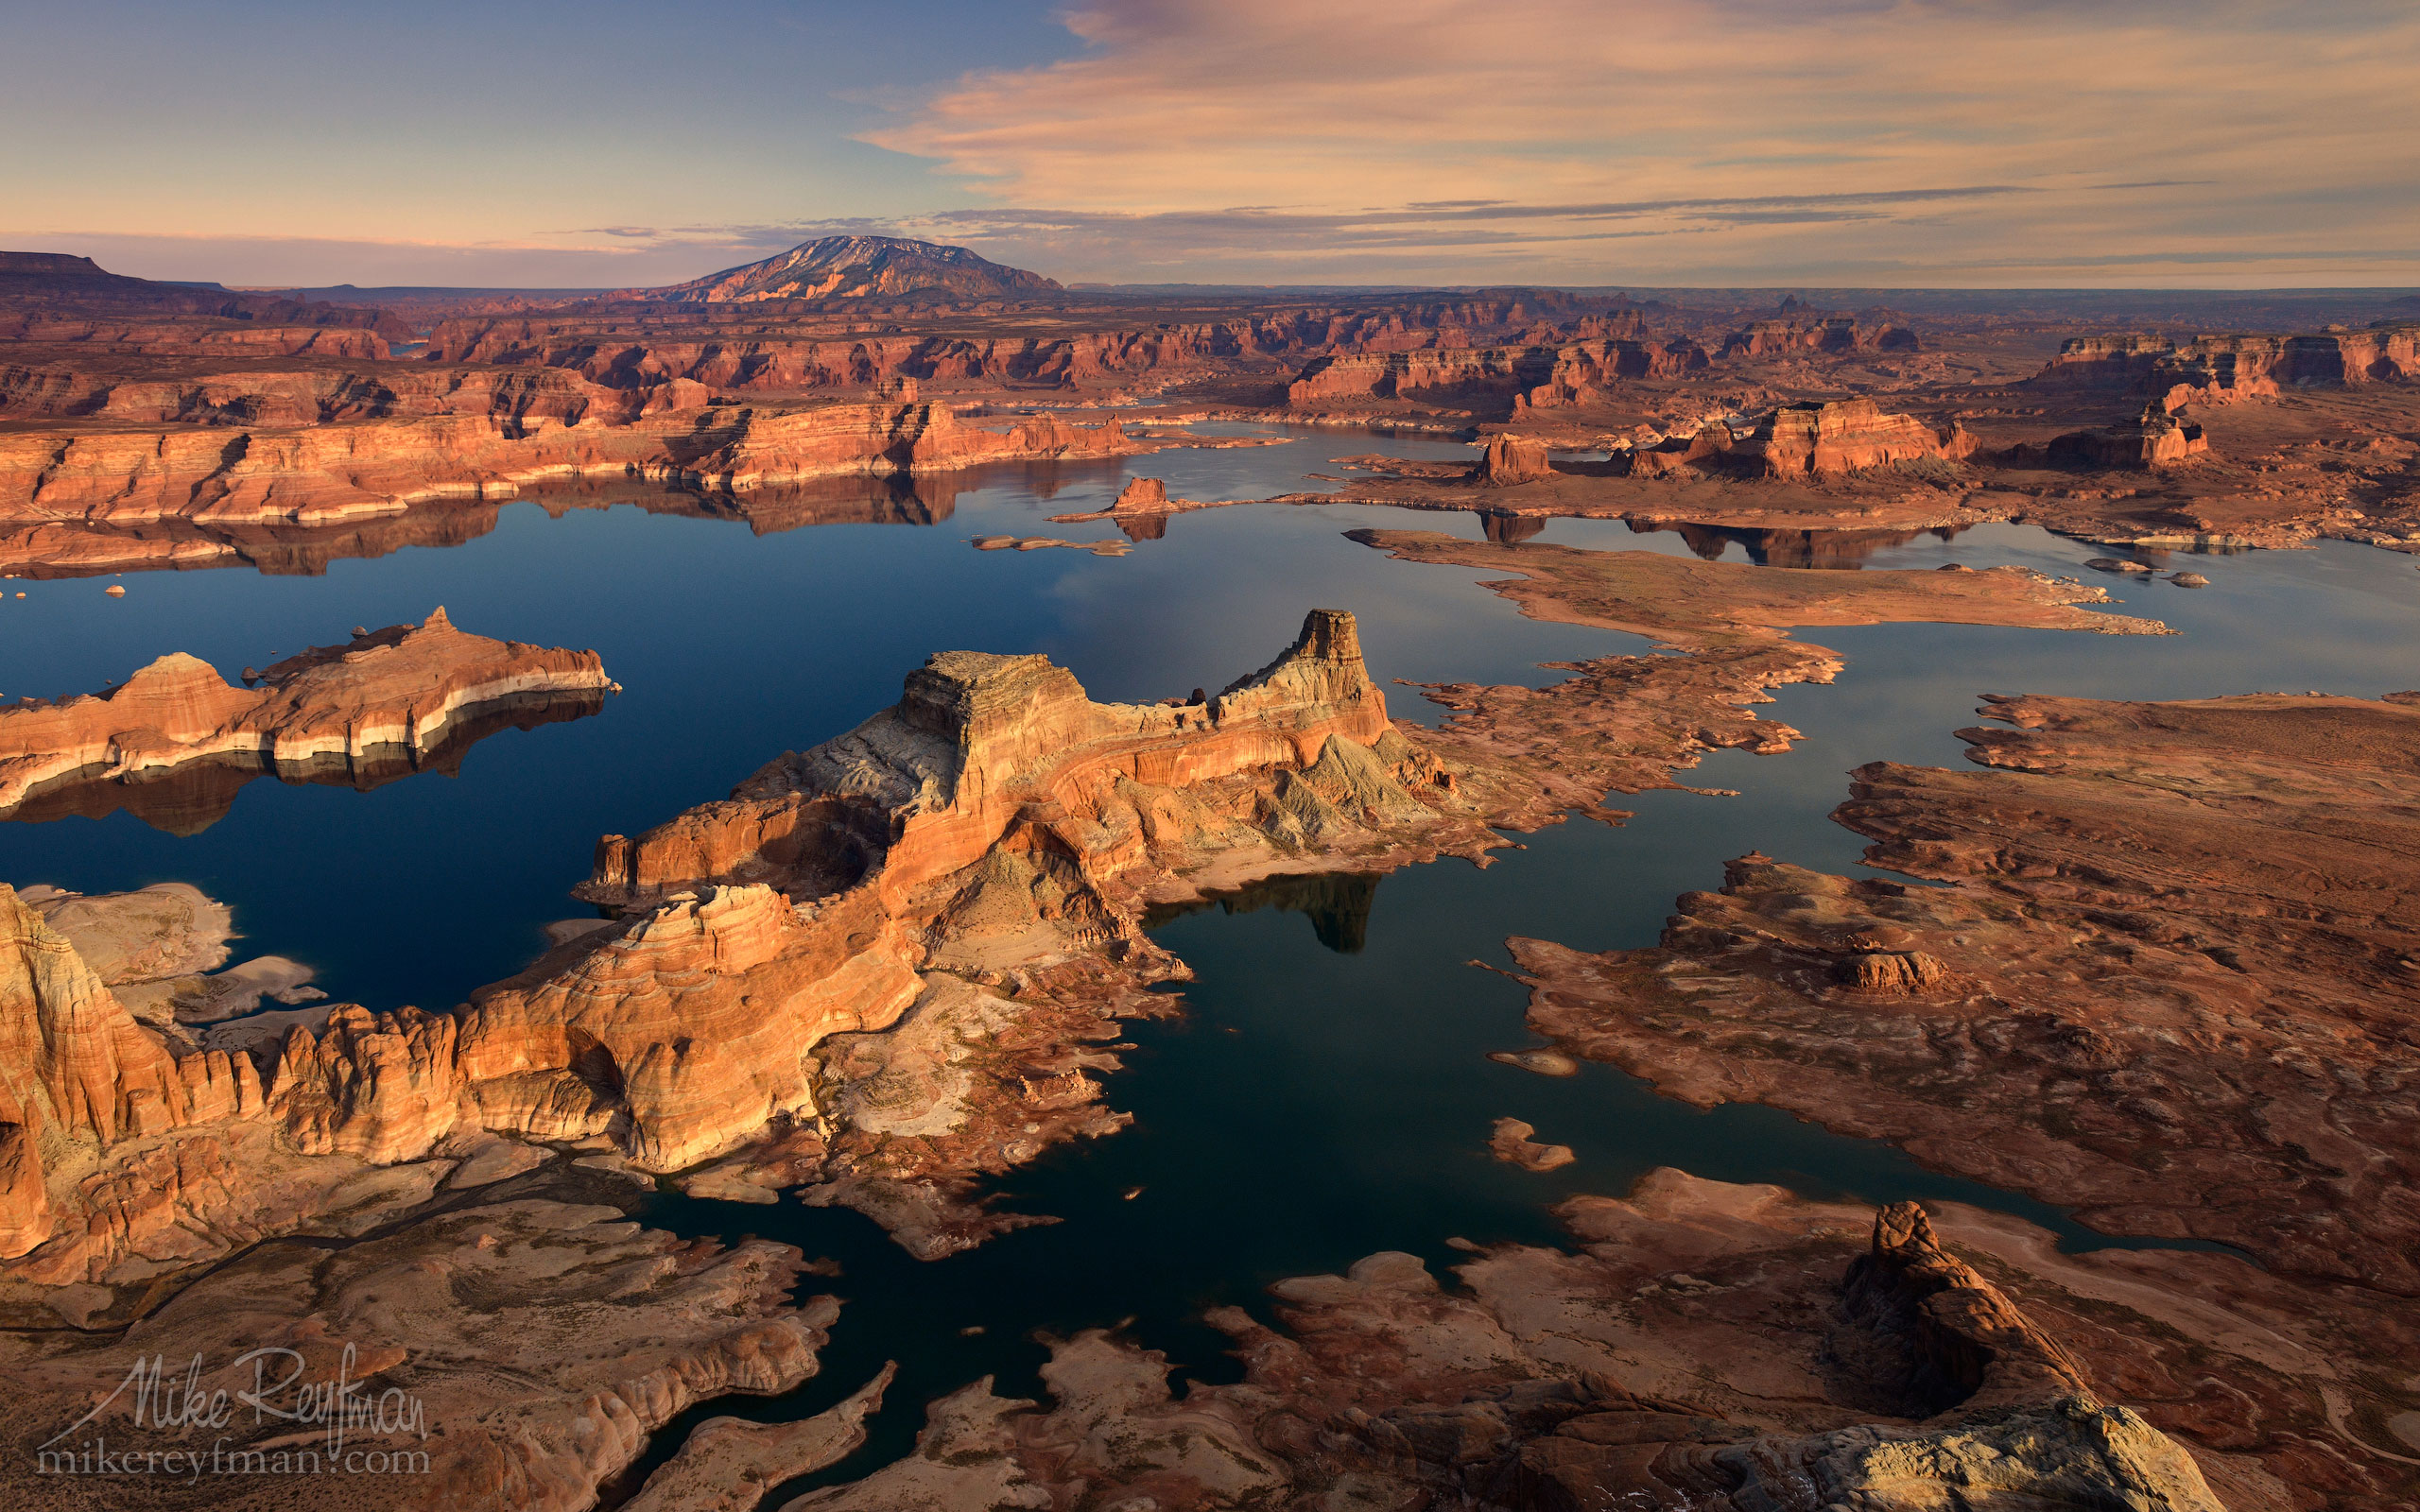 Romana Mesa, Alstrom Point. Gunsight Butte in Padre Bay and Navajo Mountain. Lake Powell, Glen Canyon NRA, Uta/Arizona, USA. Aerial. 010-LP3_D8C9389.jpg - Lake Powell, Glen Canyon NAR. Colorado and Sun Juan Rivers. Utah/Arizona, USA  - Mike Reyfman Photography